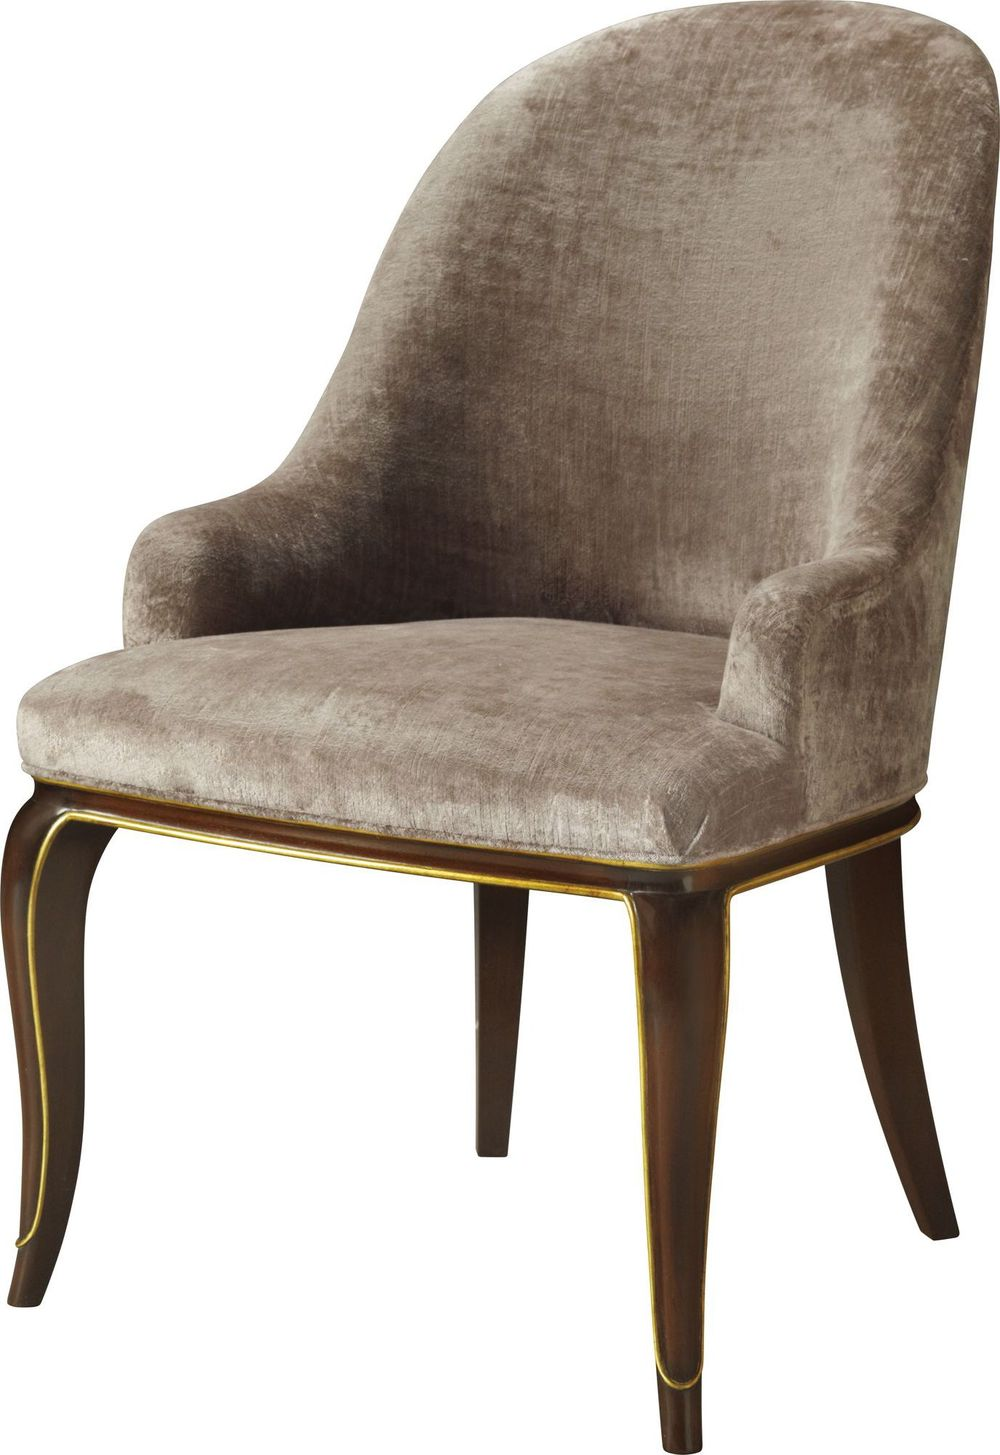 Baker Furniture - Doyenne Dining Chair